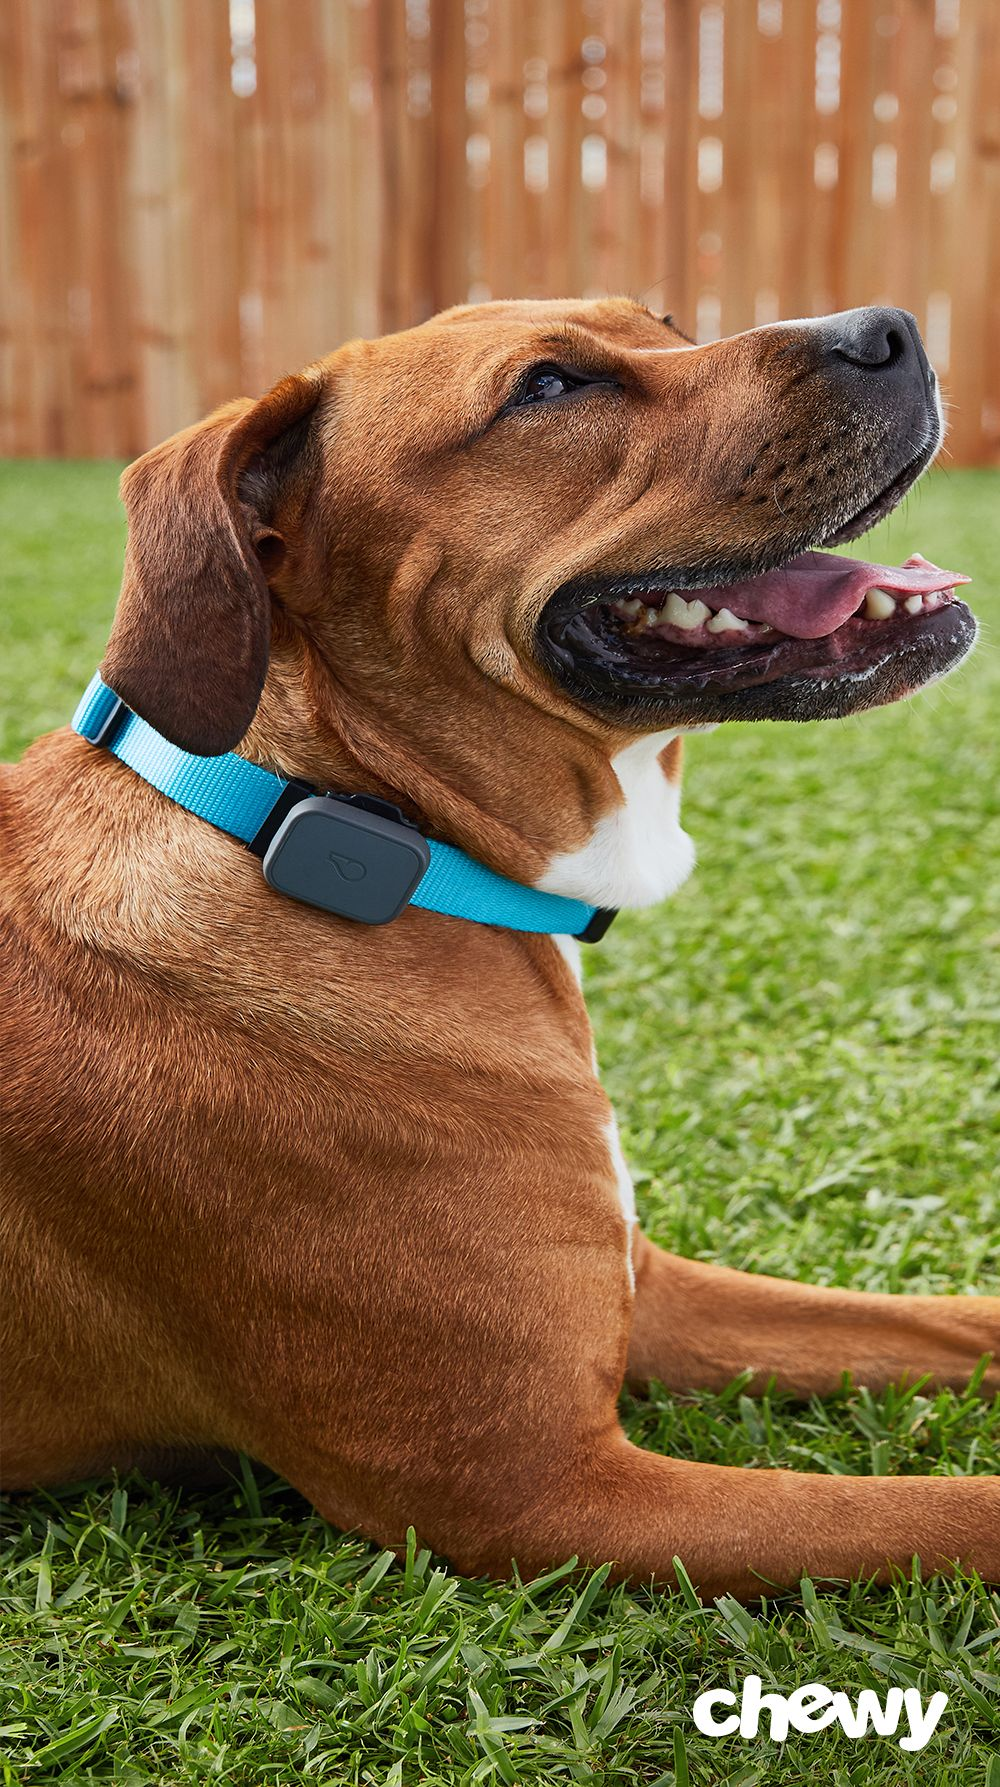 Whistle 3 Dog & Cat GPS Tracker & Activity Monitor allows